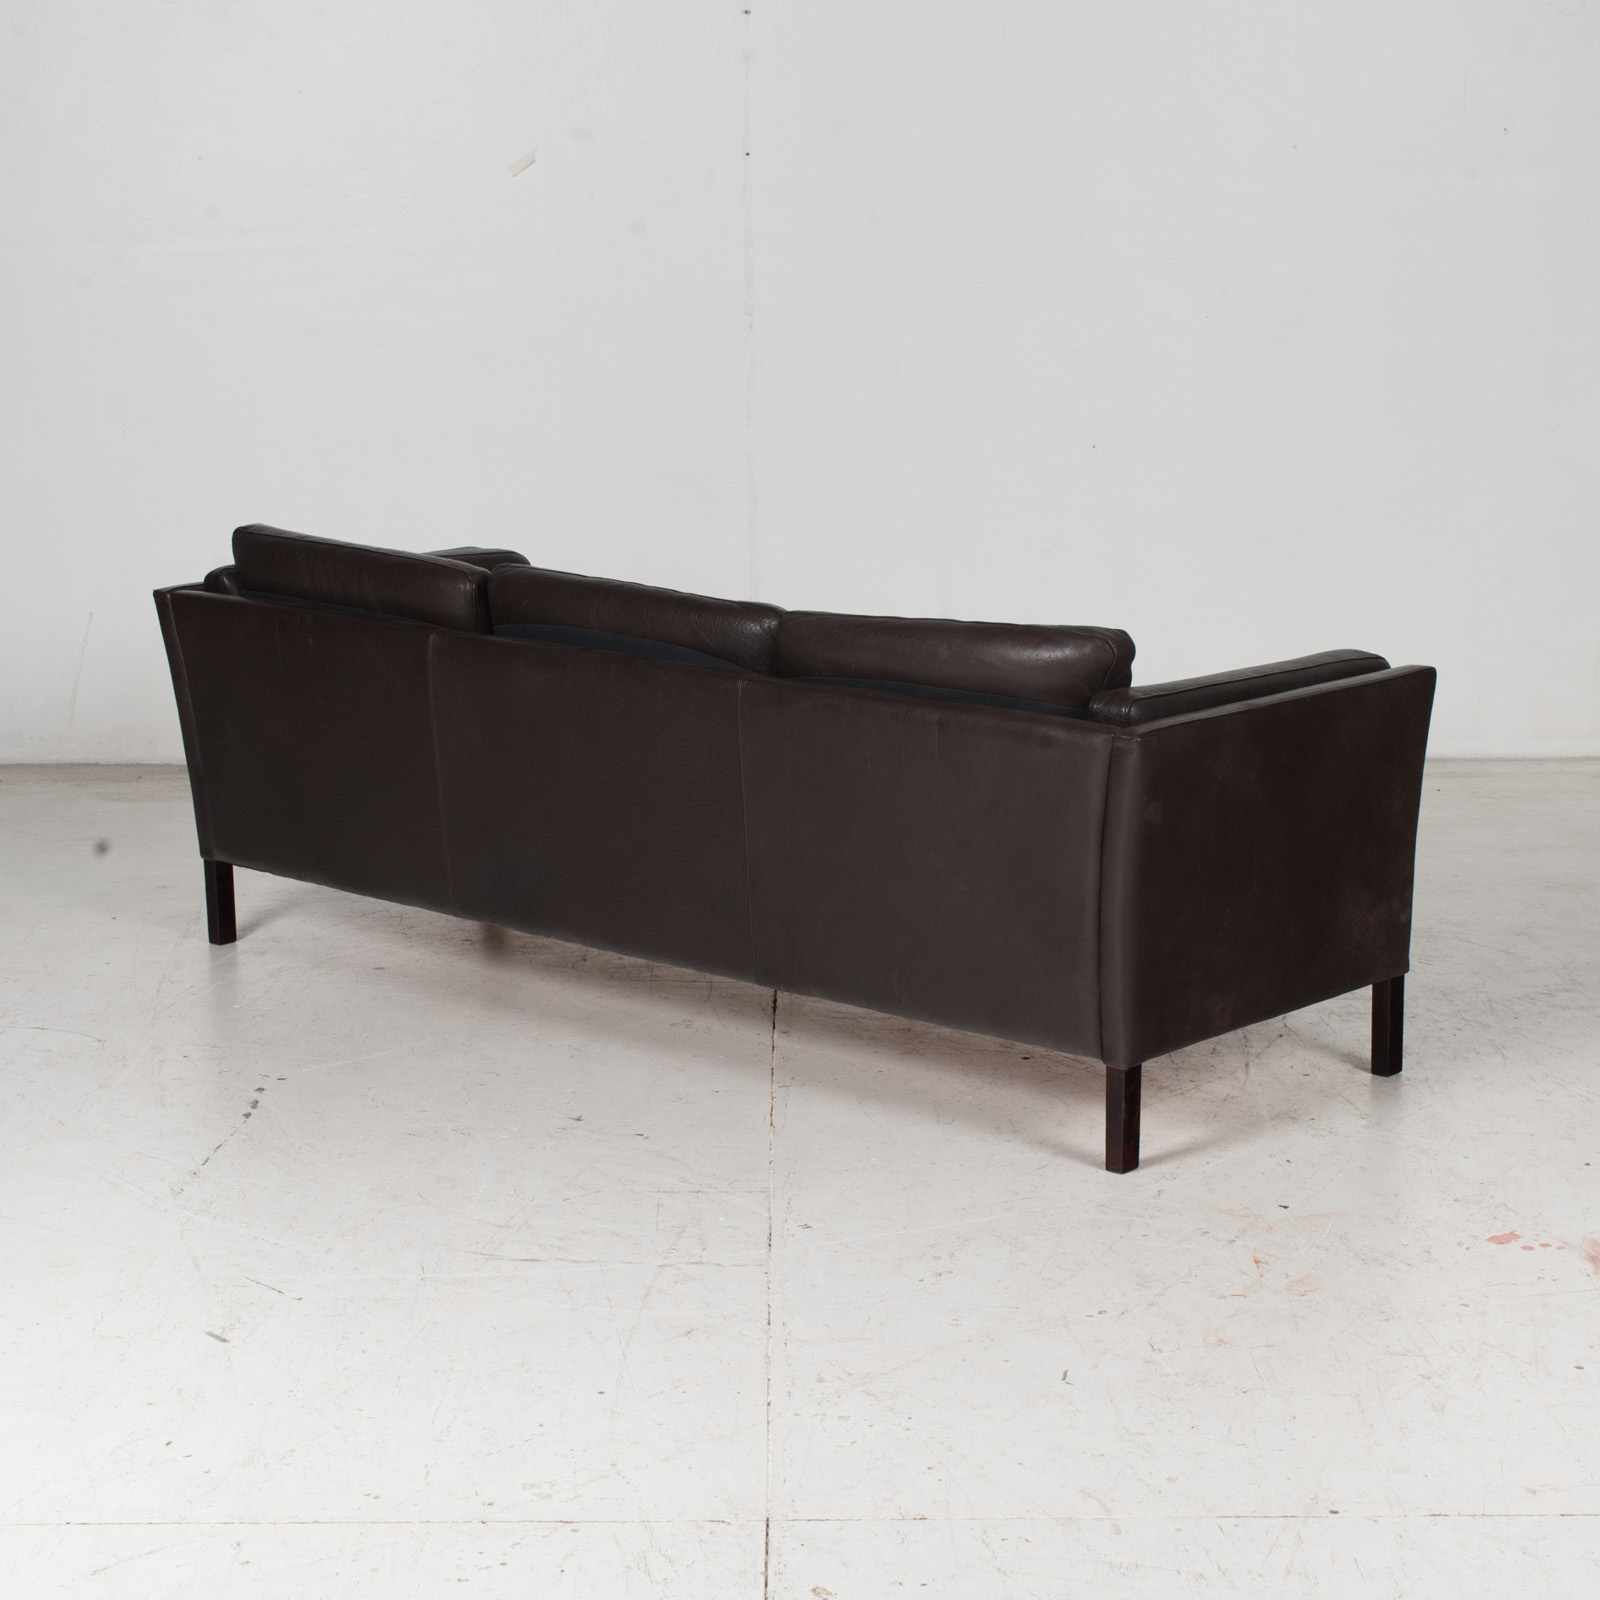 3 Seat Sofa In Dark Brown Leather, 1960s, Denmark 8